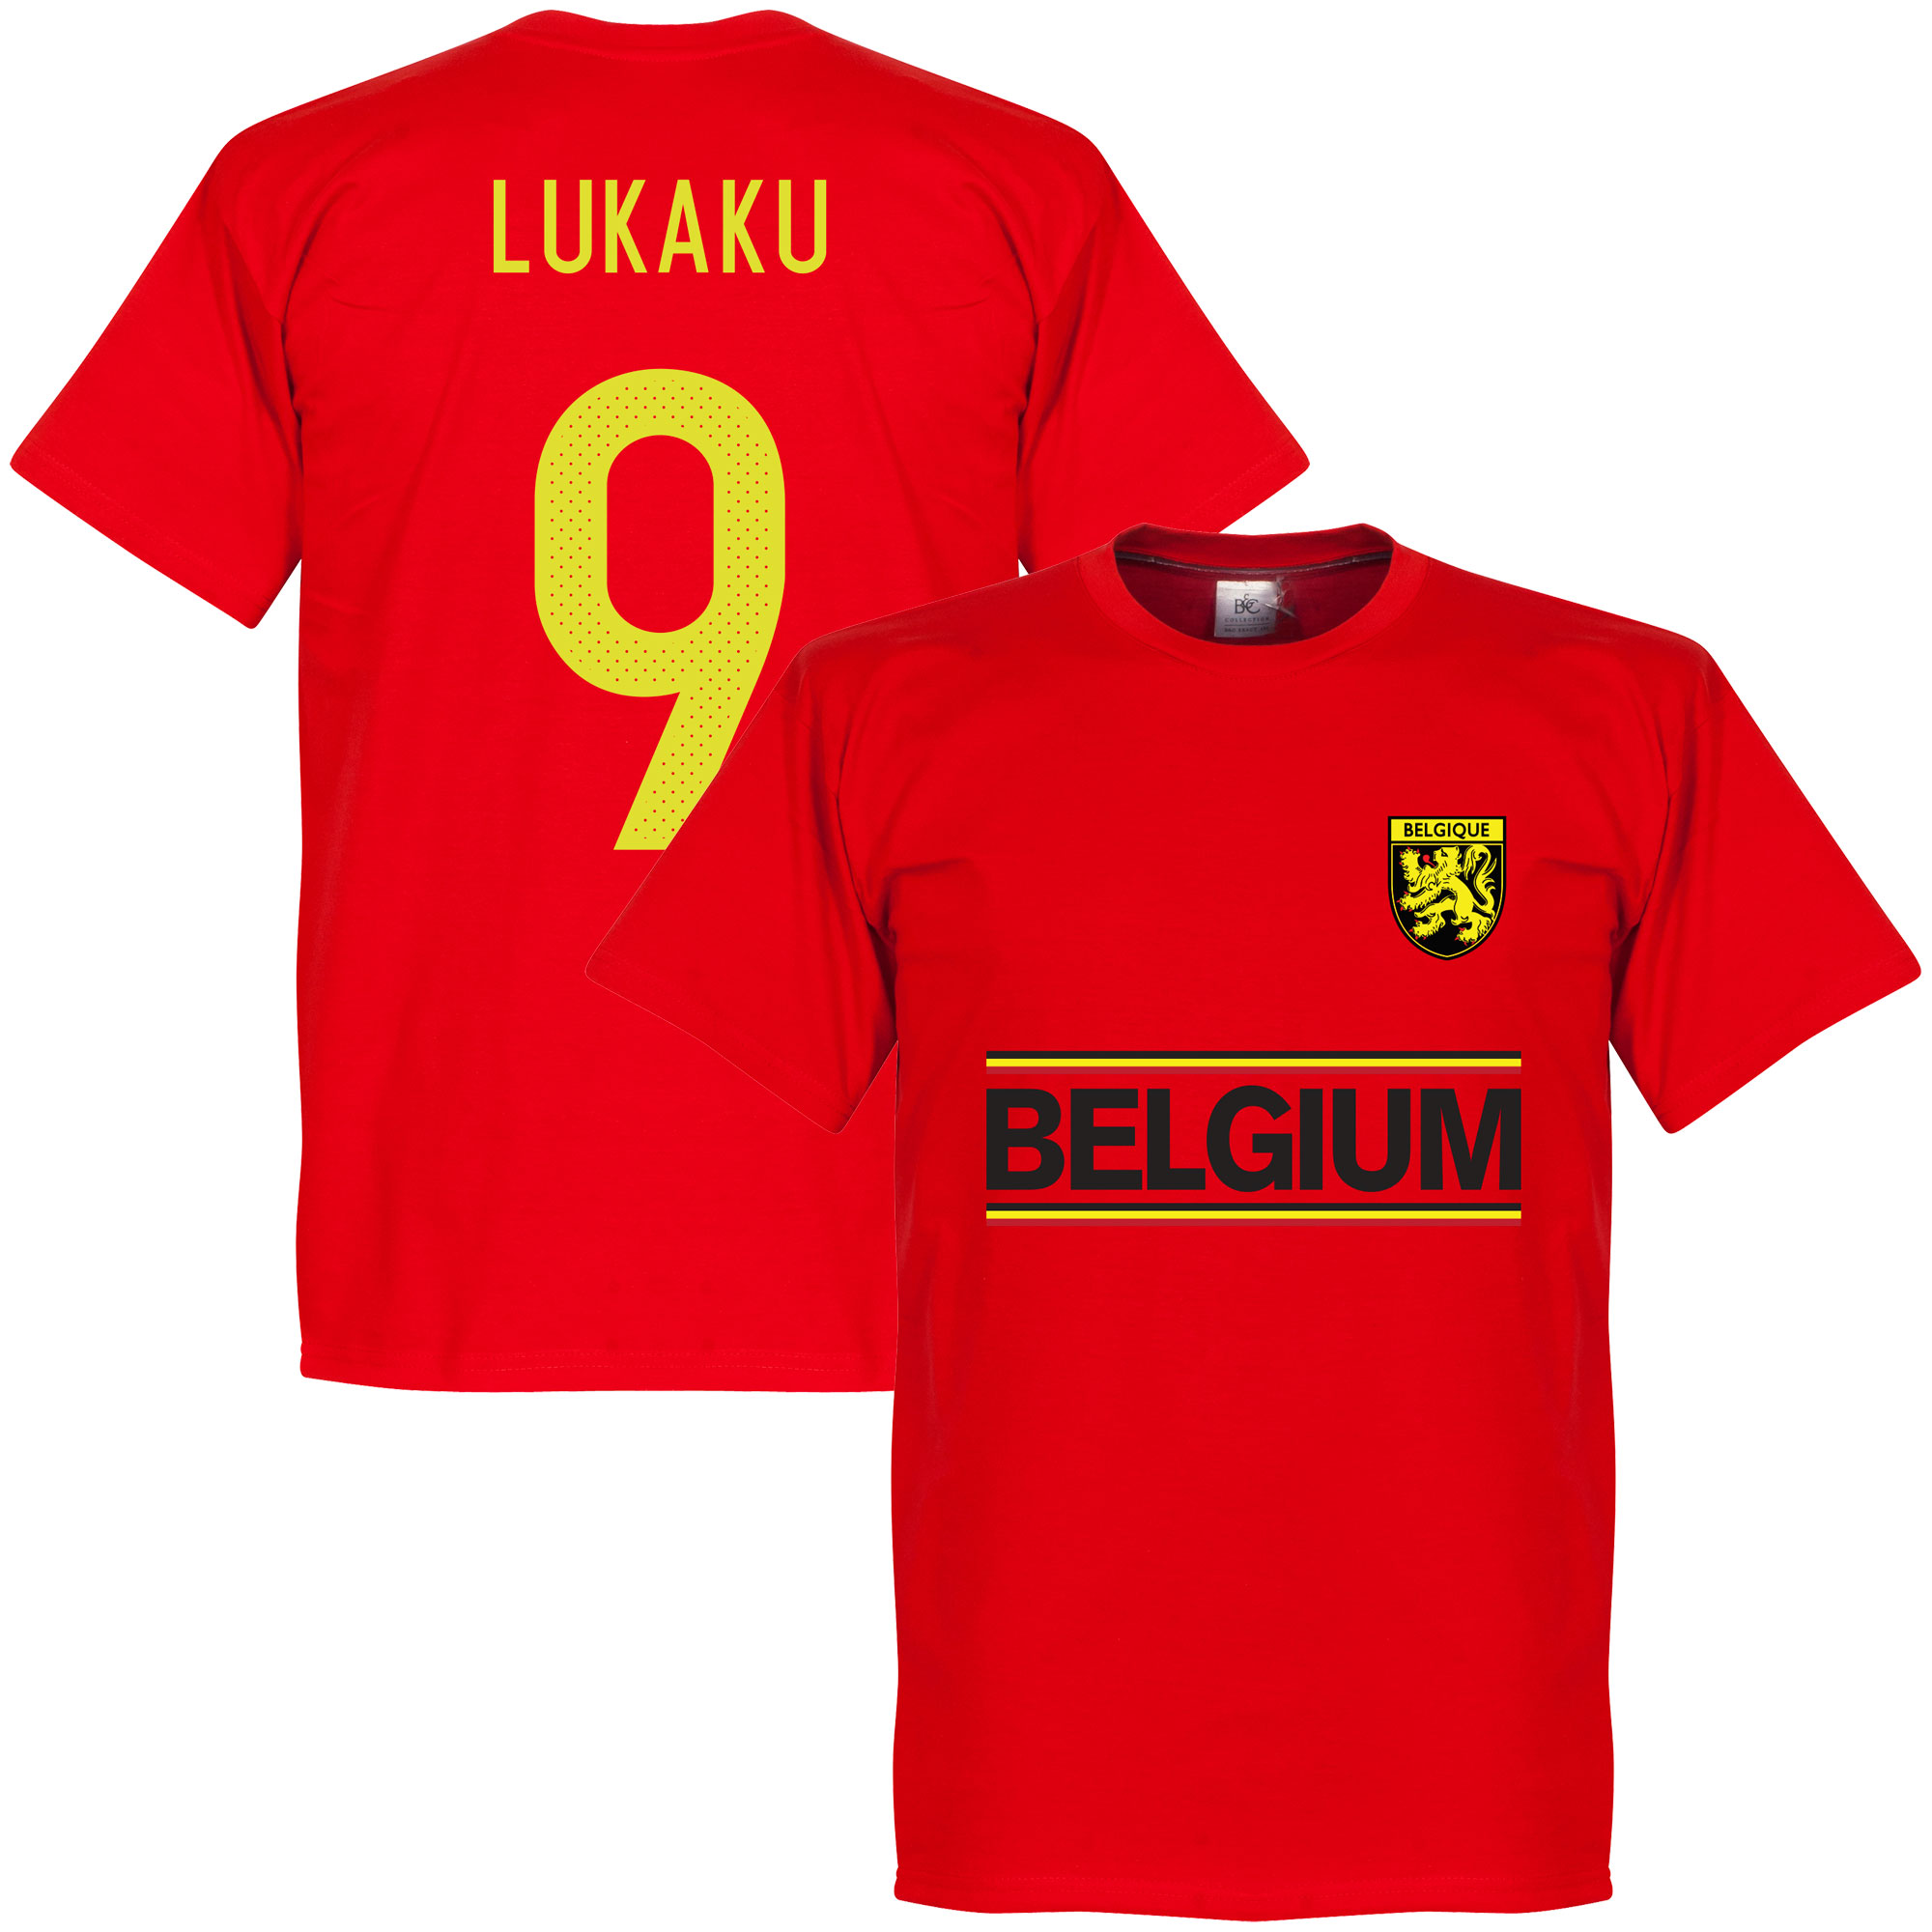 Belgium Lukaku Team Tee - Red - XXXL